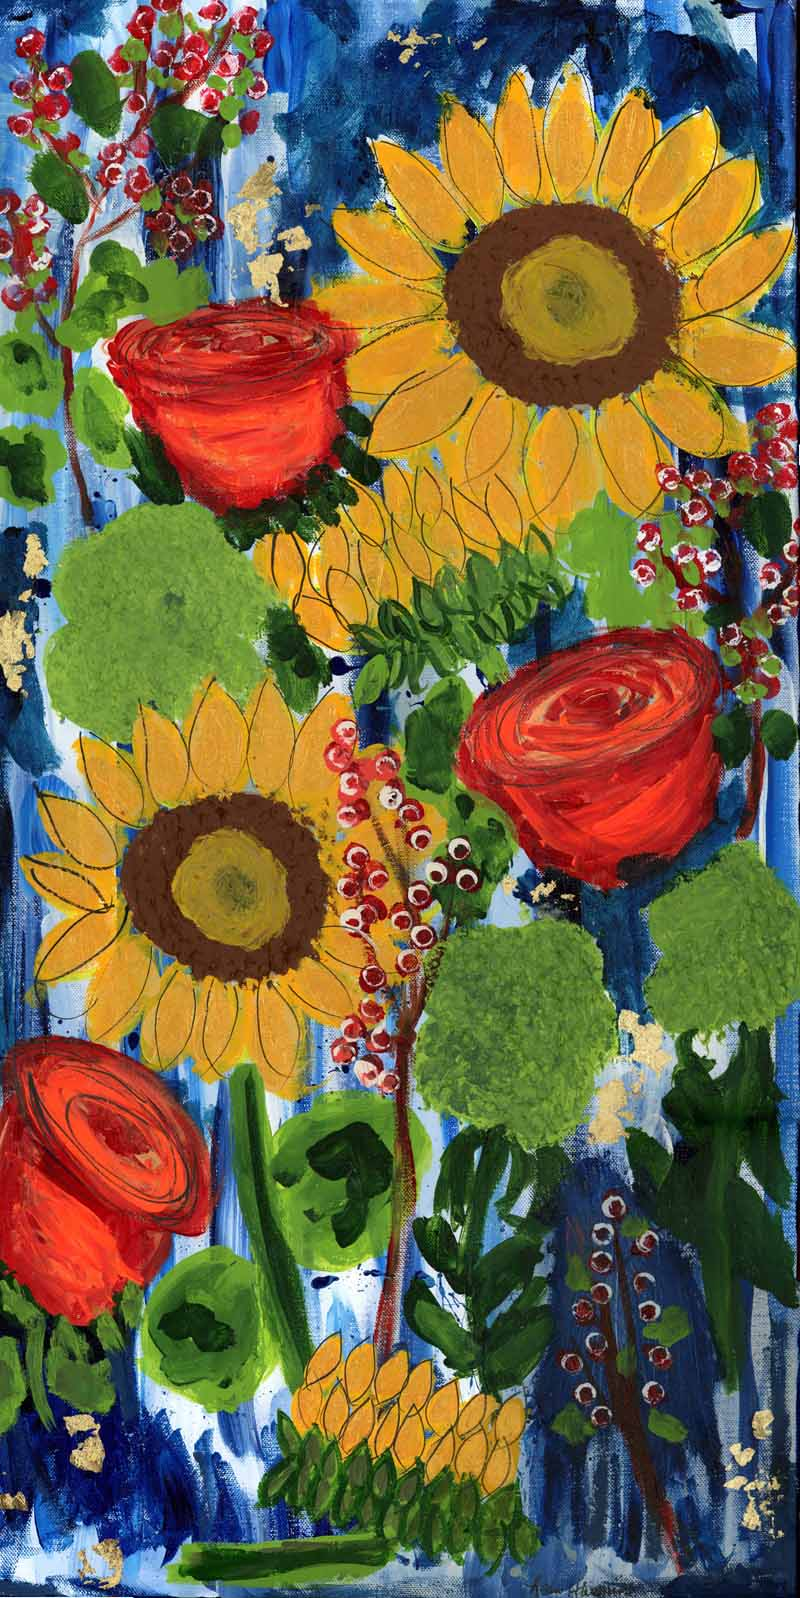 A narrow painting with a deep blue background and sunflowers, orange red tulips, green puffly plant and branches with berries and leaves.